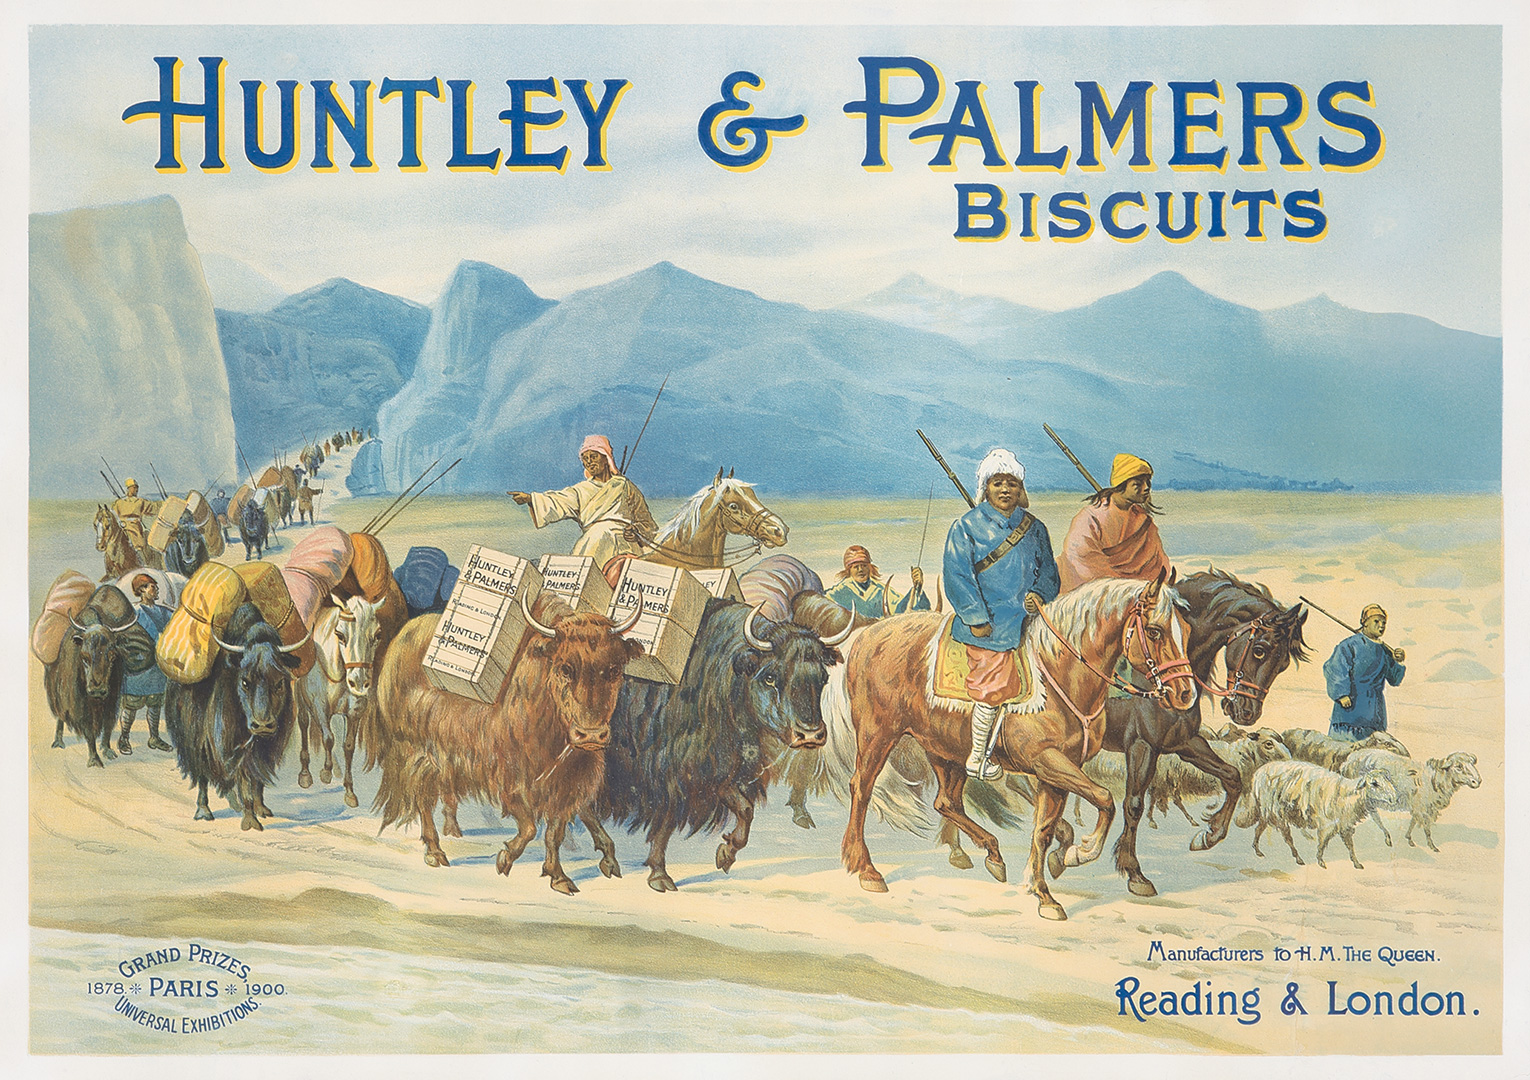 137. Huntley & Palmers Biscuits.